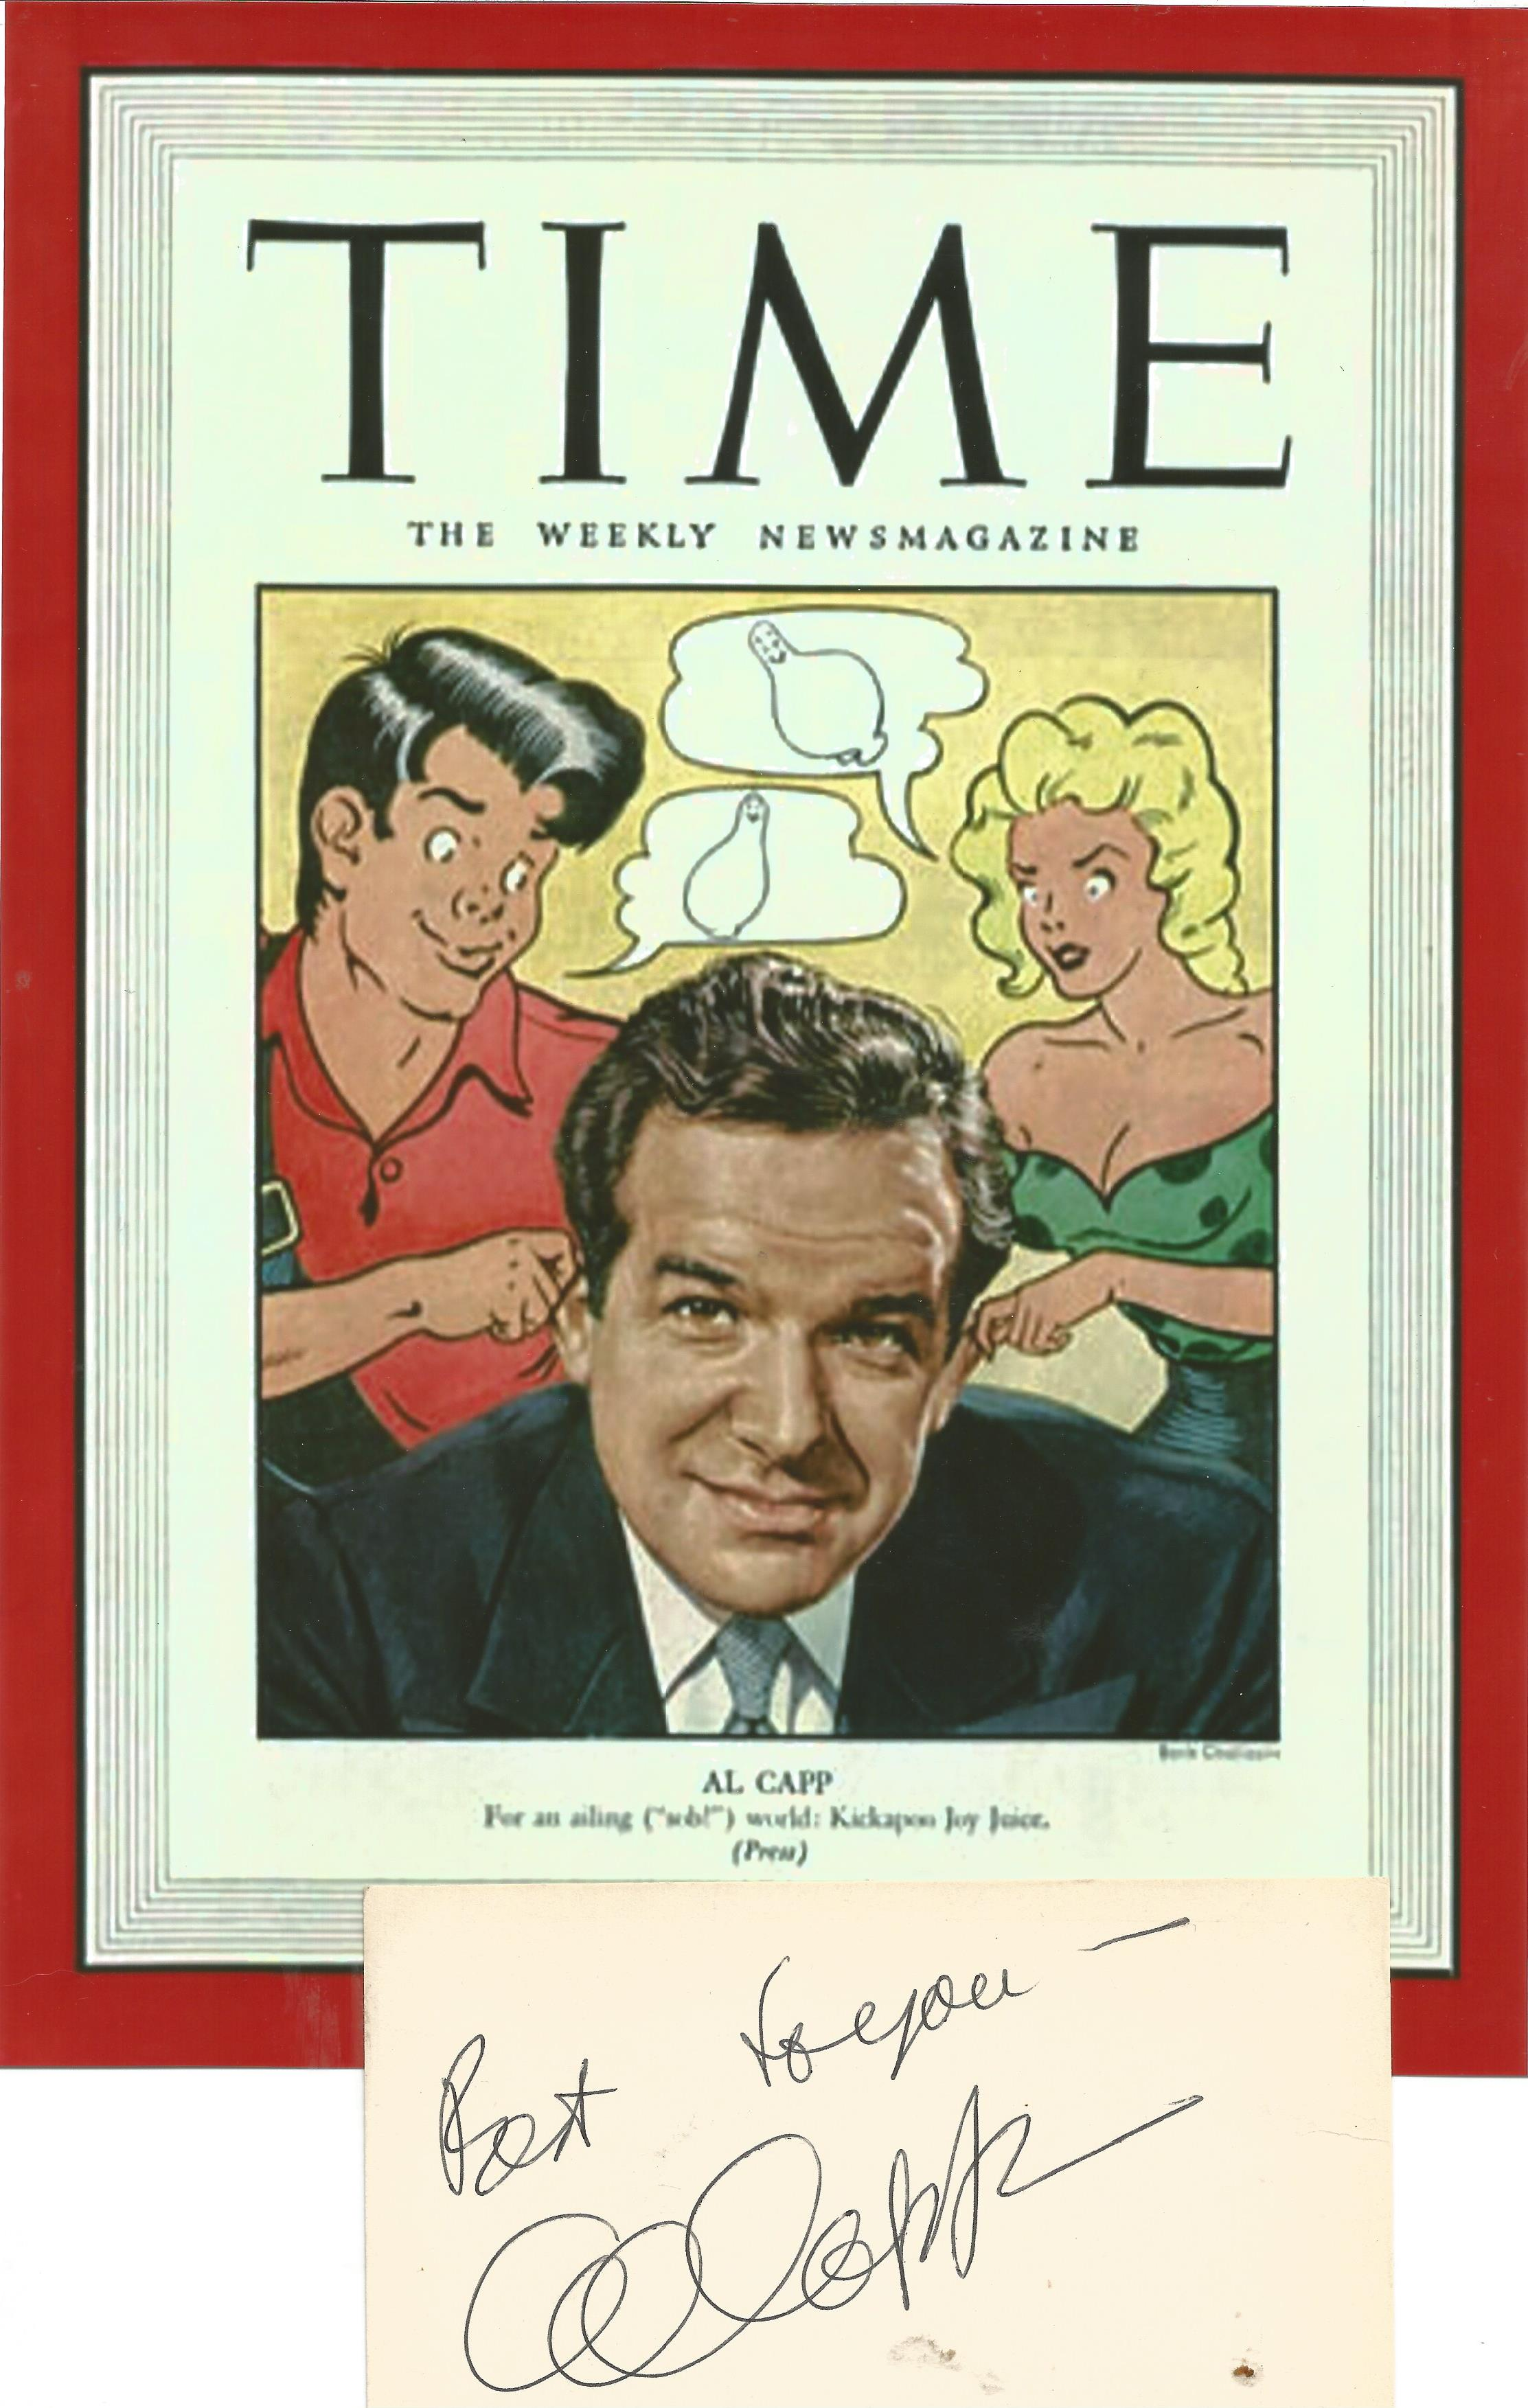 Al Capp signature piece includes signed 5x3 card and Time Weekly Magazine 10x8 promo photo. Alfred